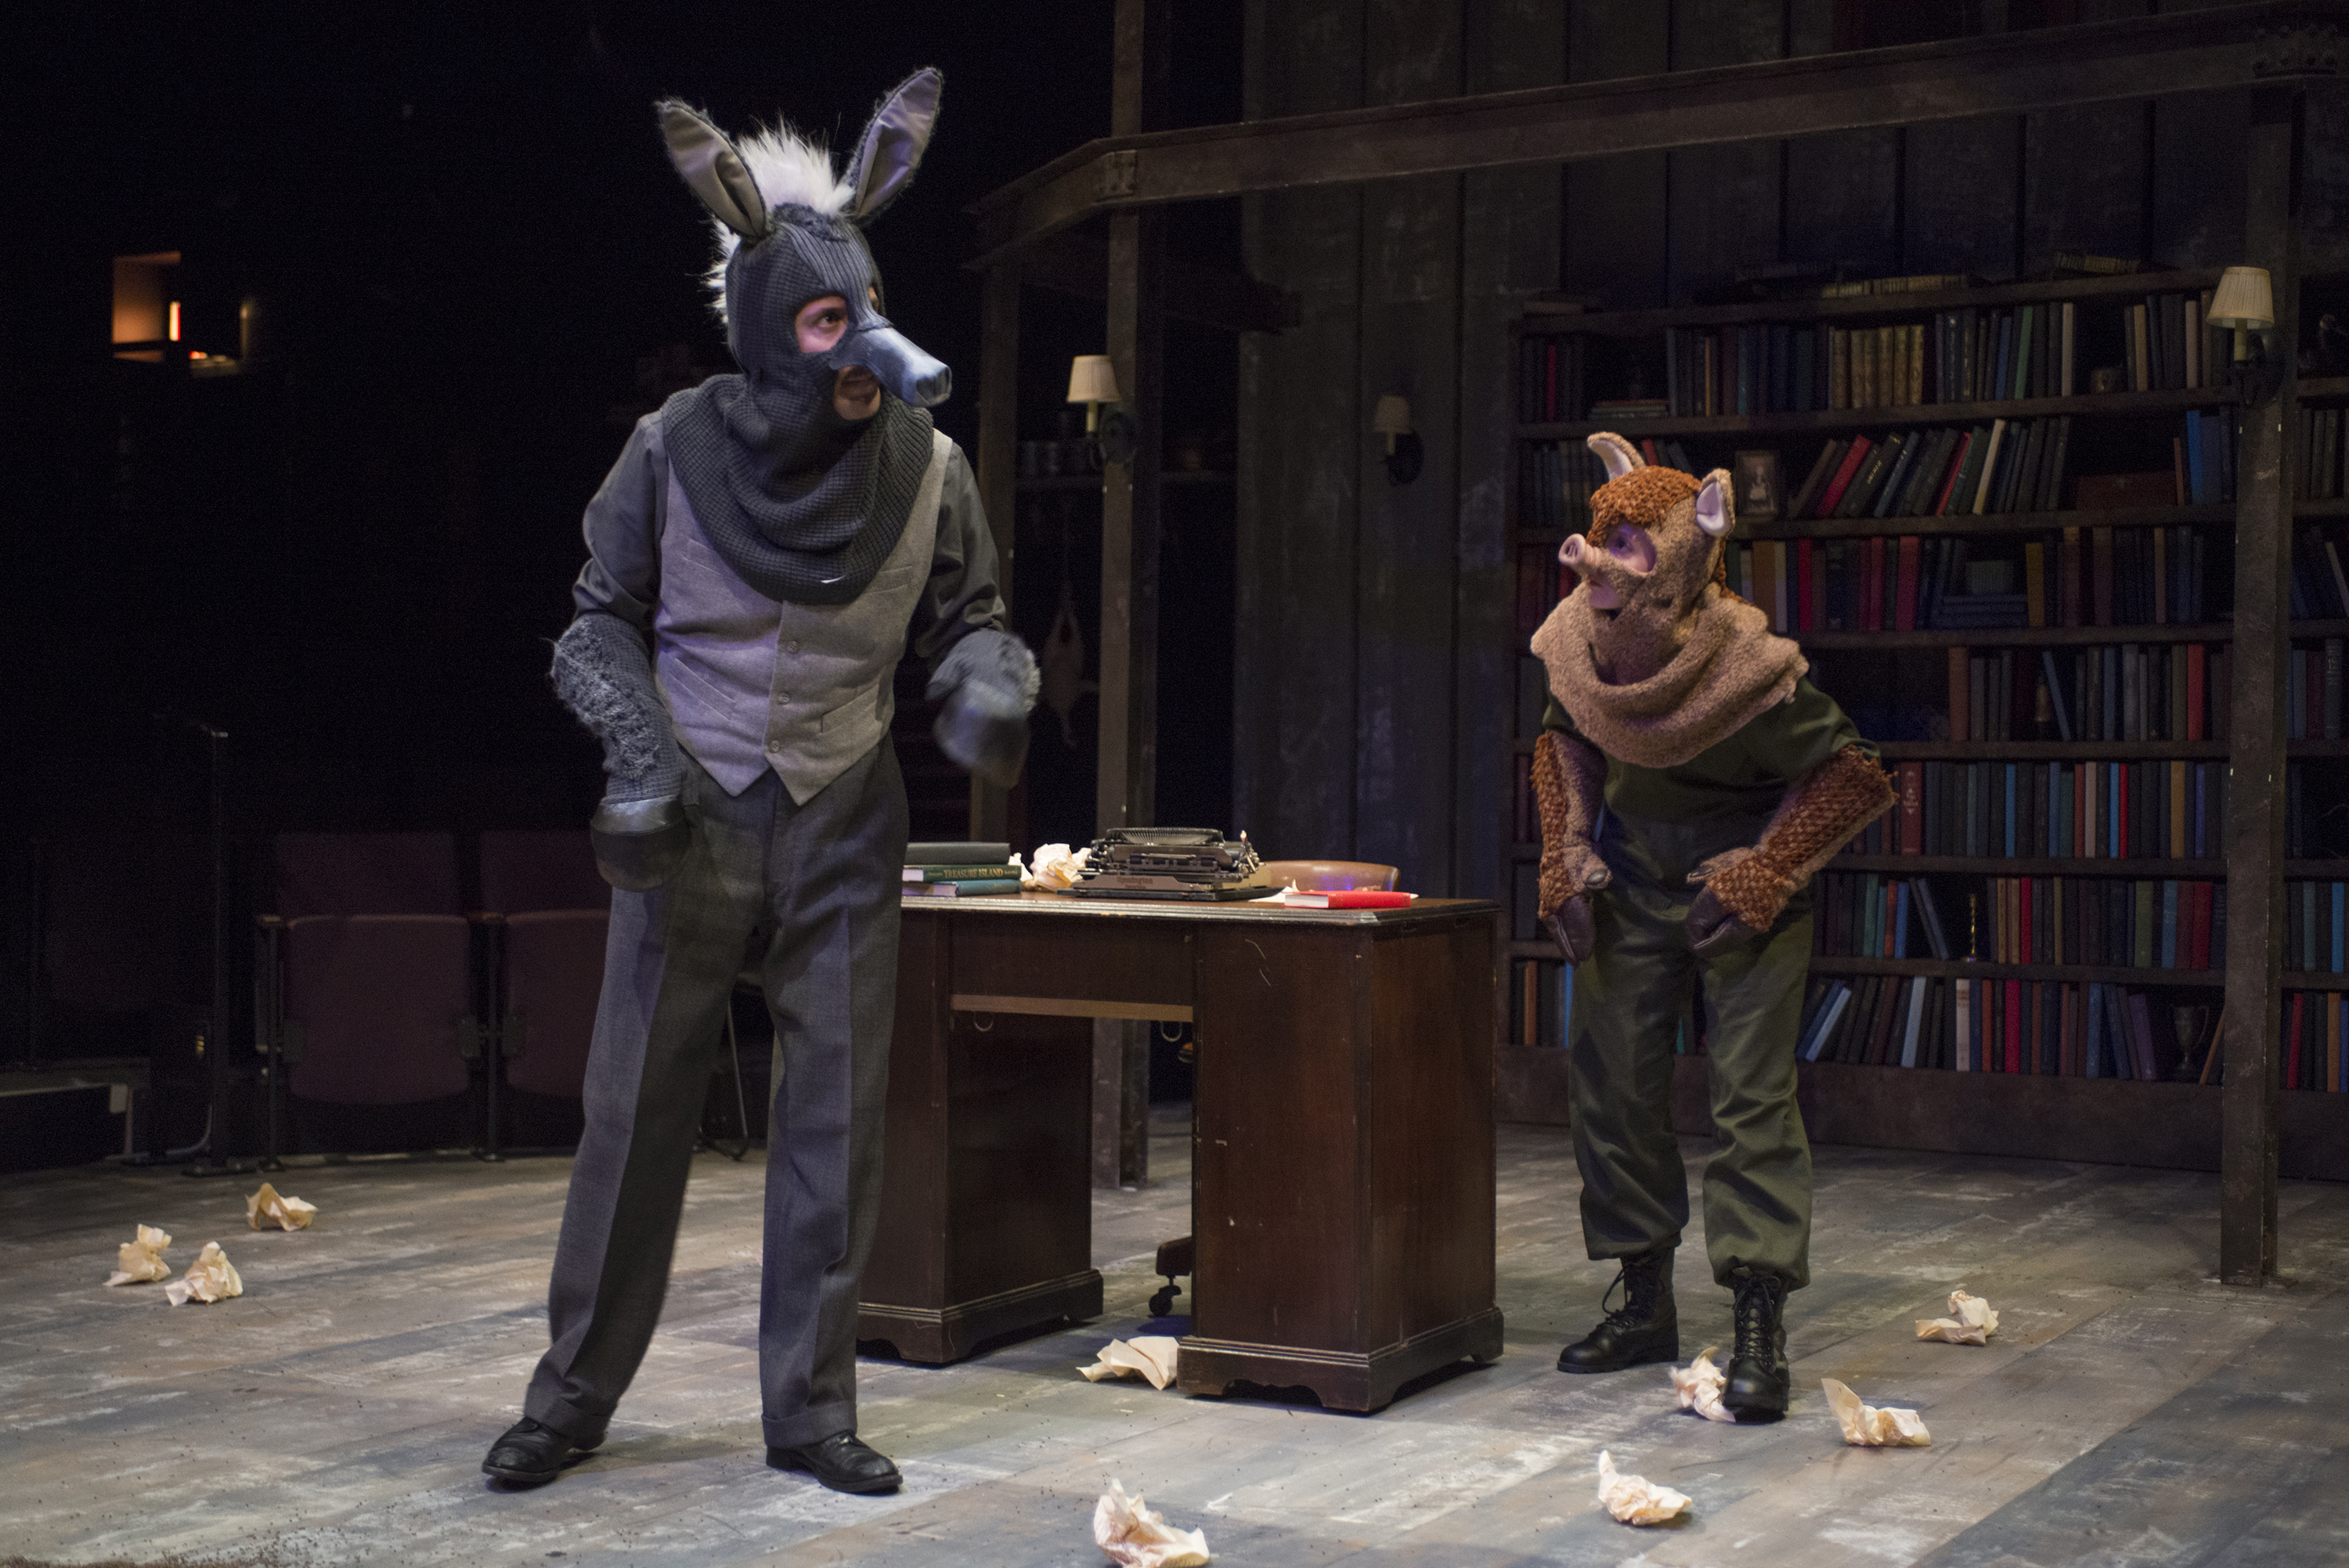 stage and cinema theater review animal farm steppenwolf theatre benjamin will allan questions the new leadership supported by squealer amelia hefferon